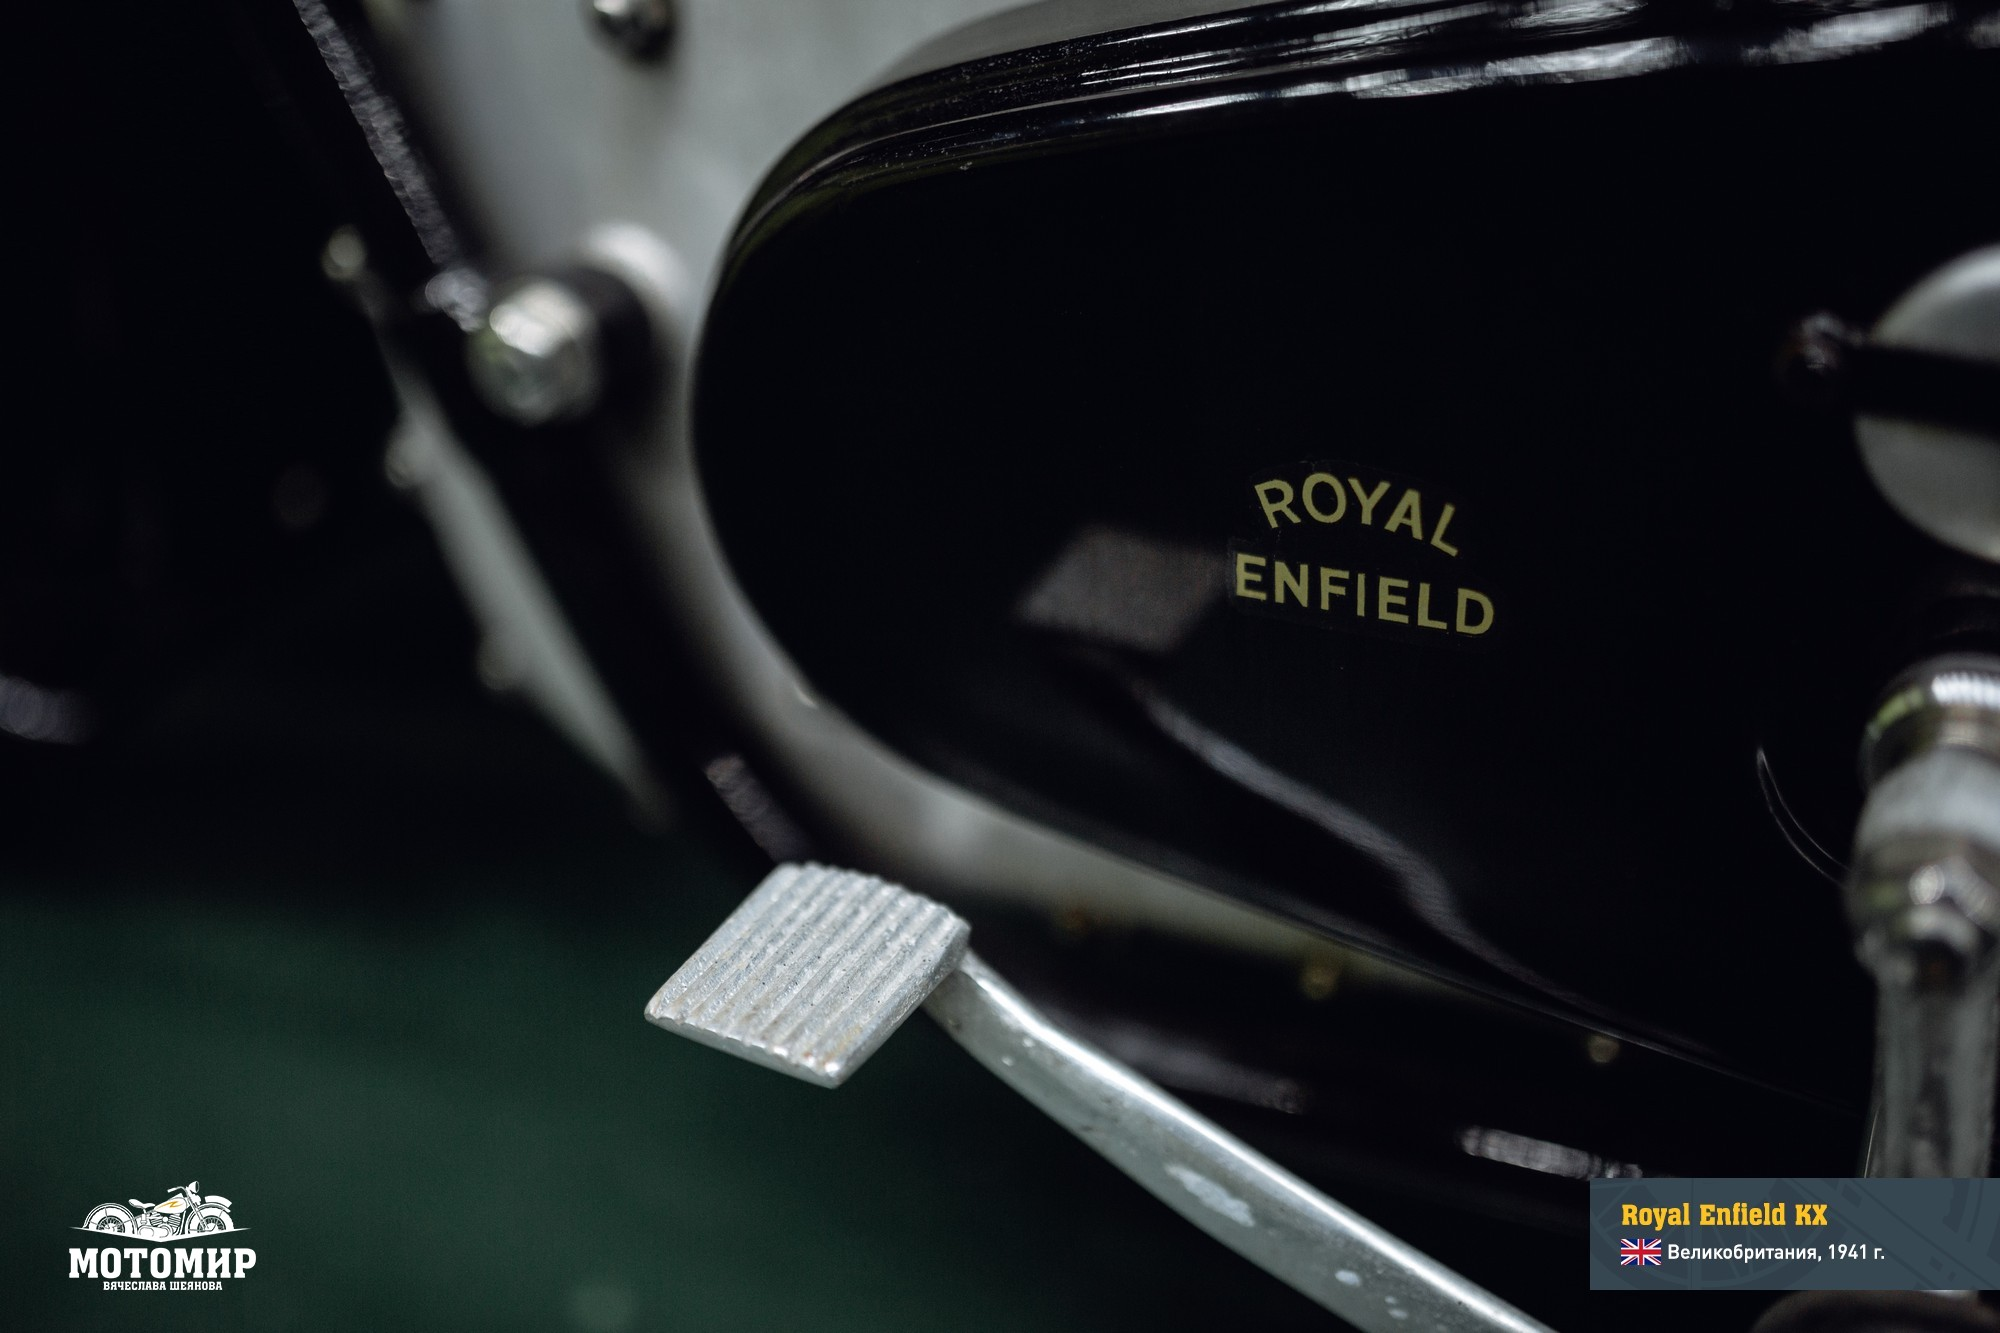 royal-enfield-kx-201601-web-24